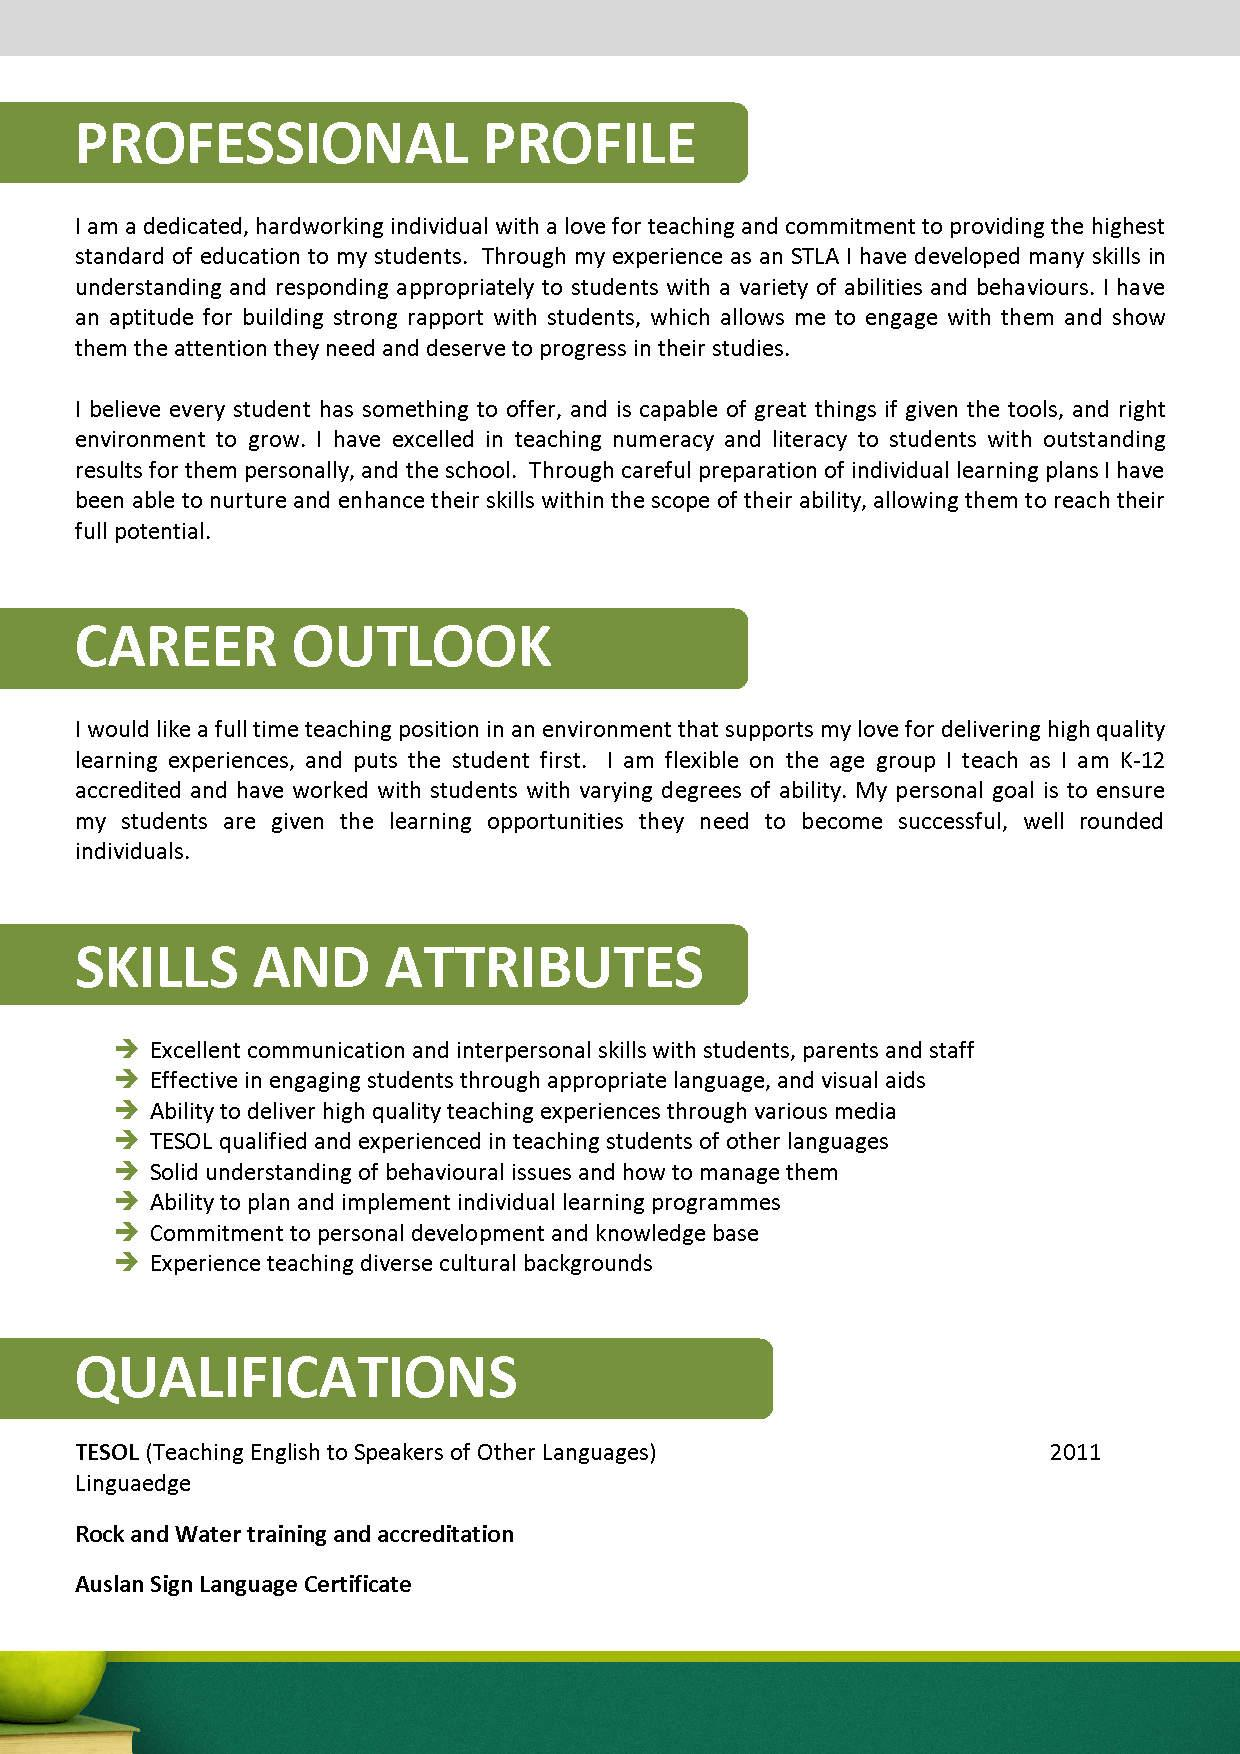 How To Write An Australian Resume We Can Help With Professional Resume Writing Resume